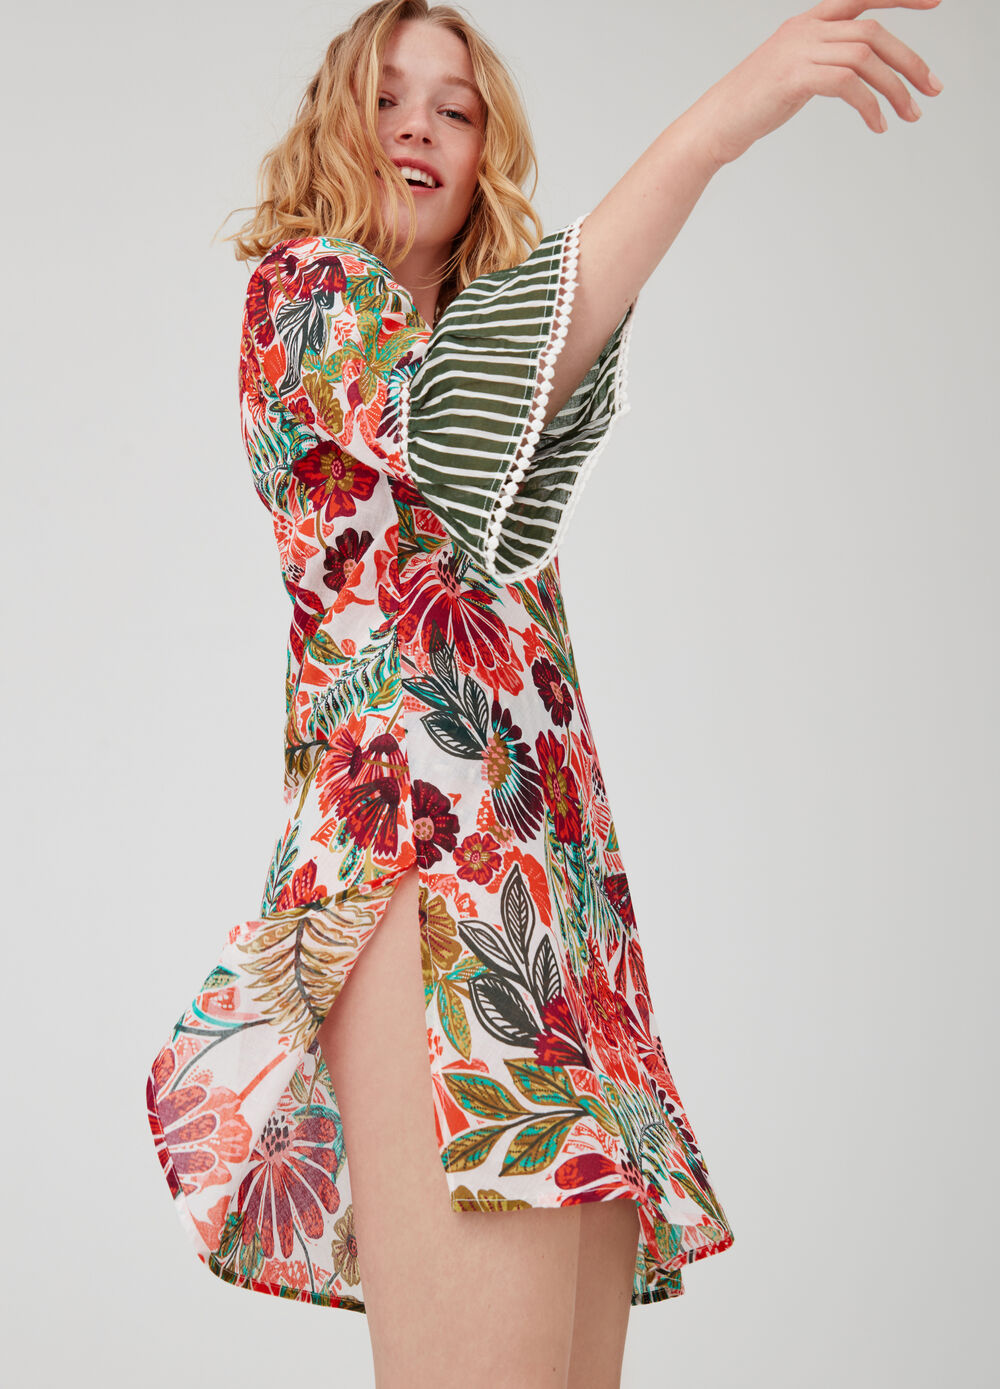 Beach cover-up with floral flounce